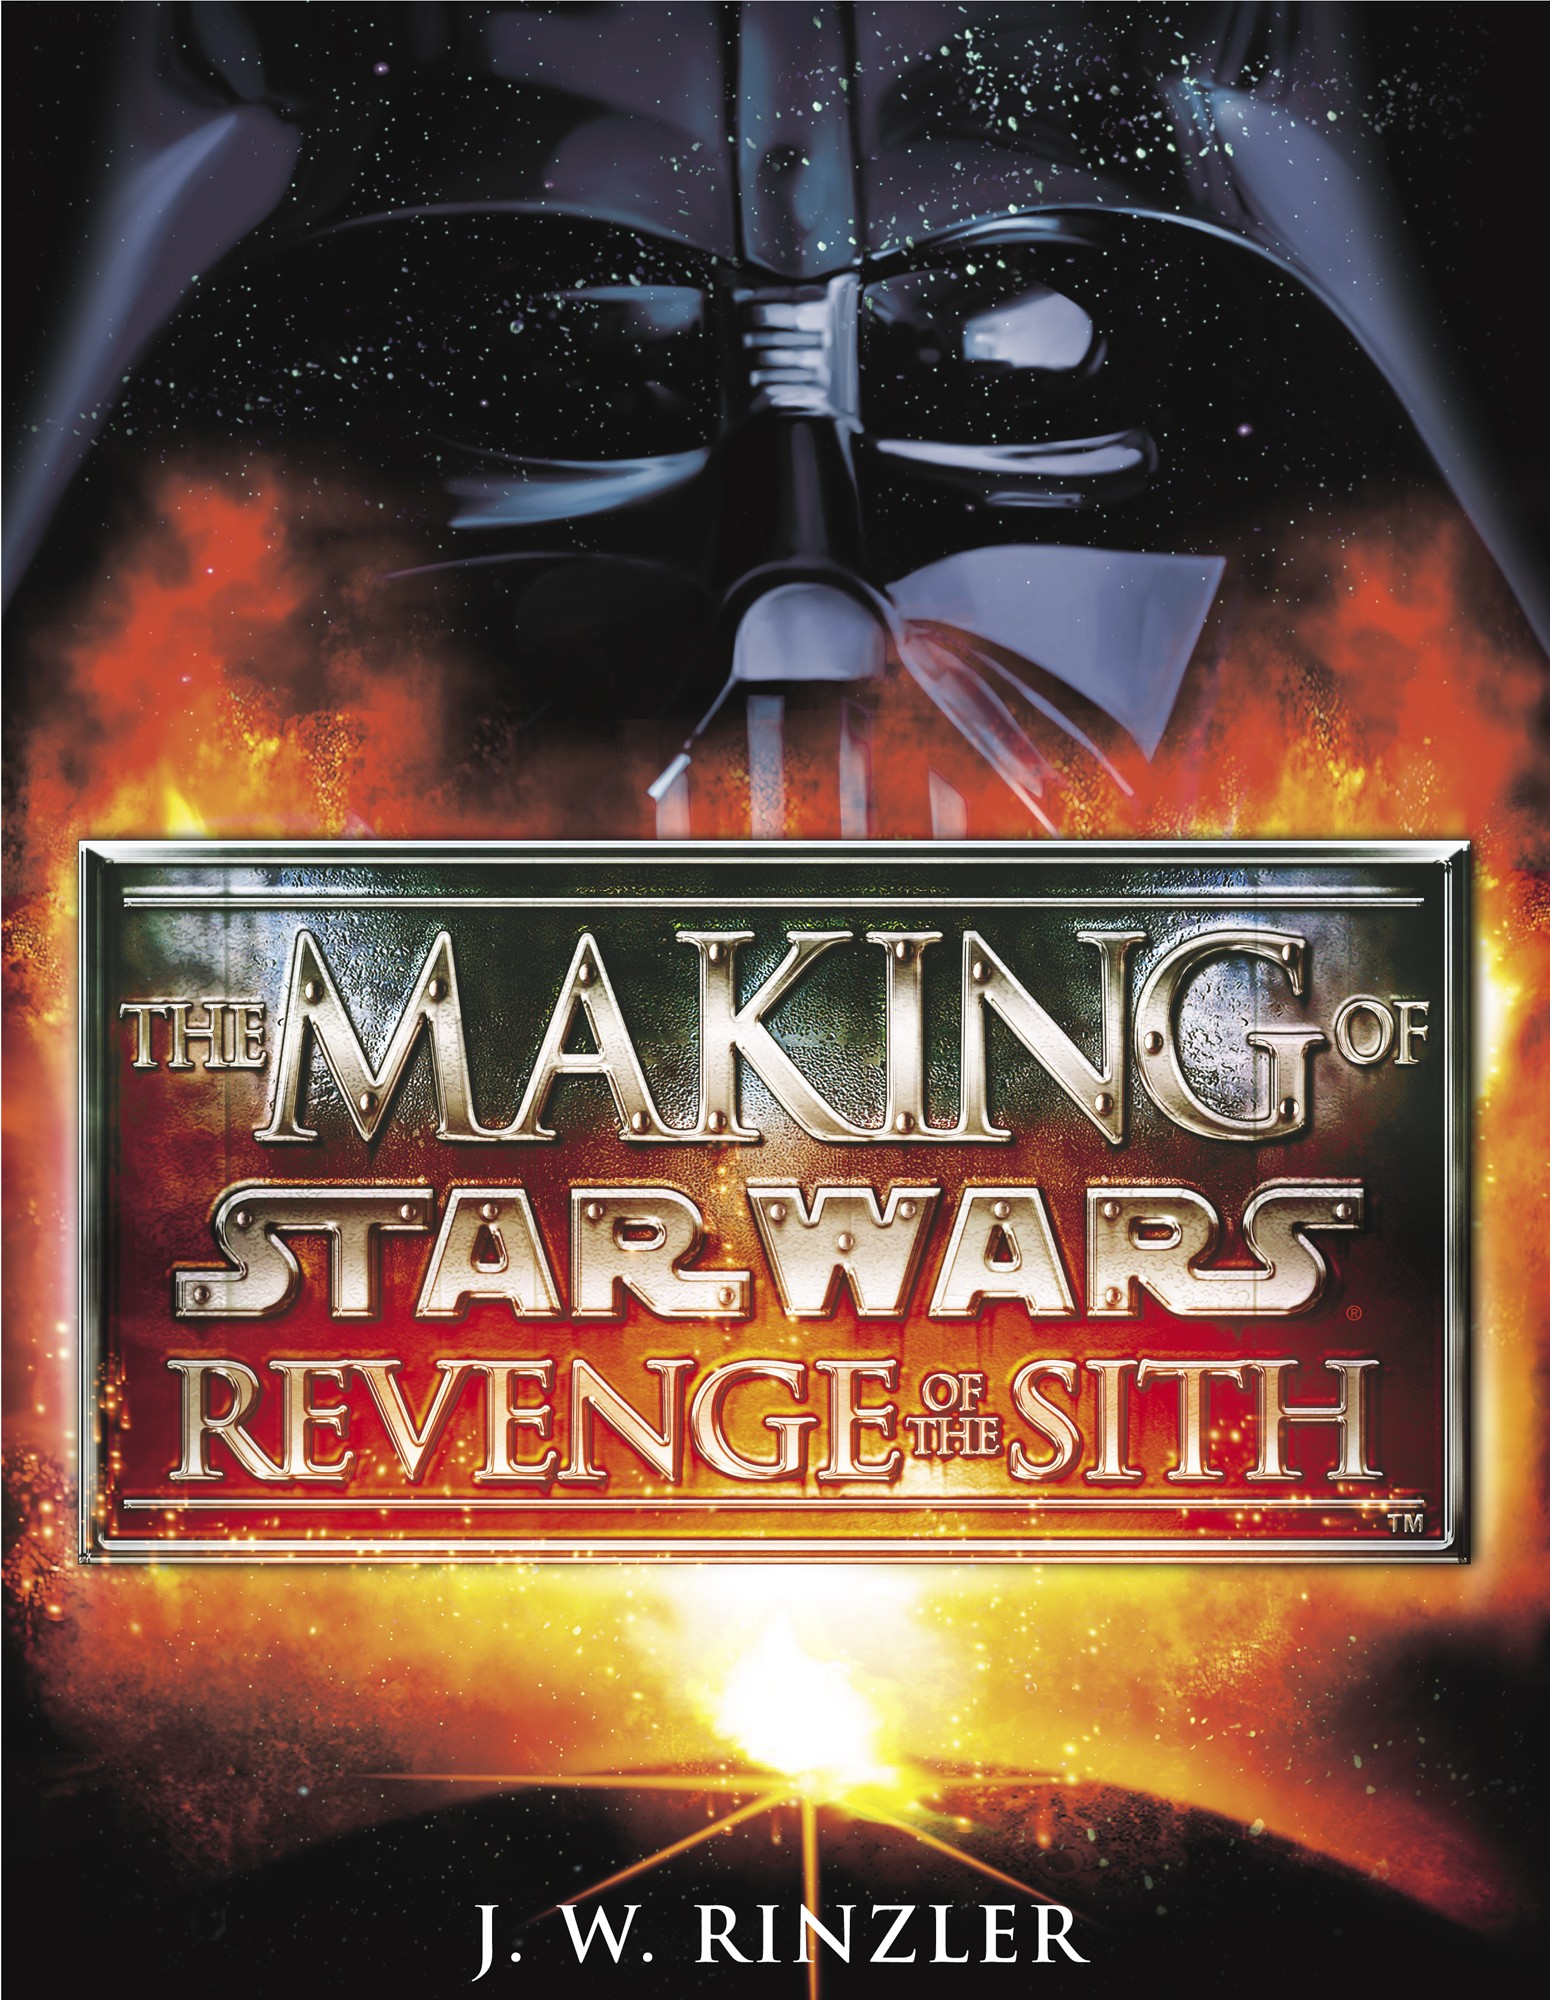 Revenge of the Sith Remake - Chapter 5 - DERT - Star Wars ...